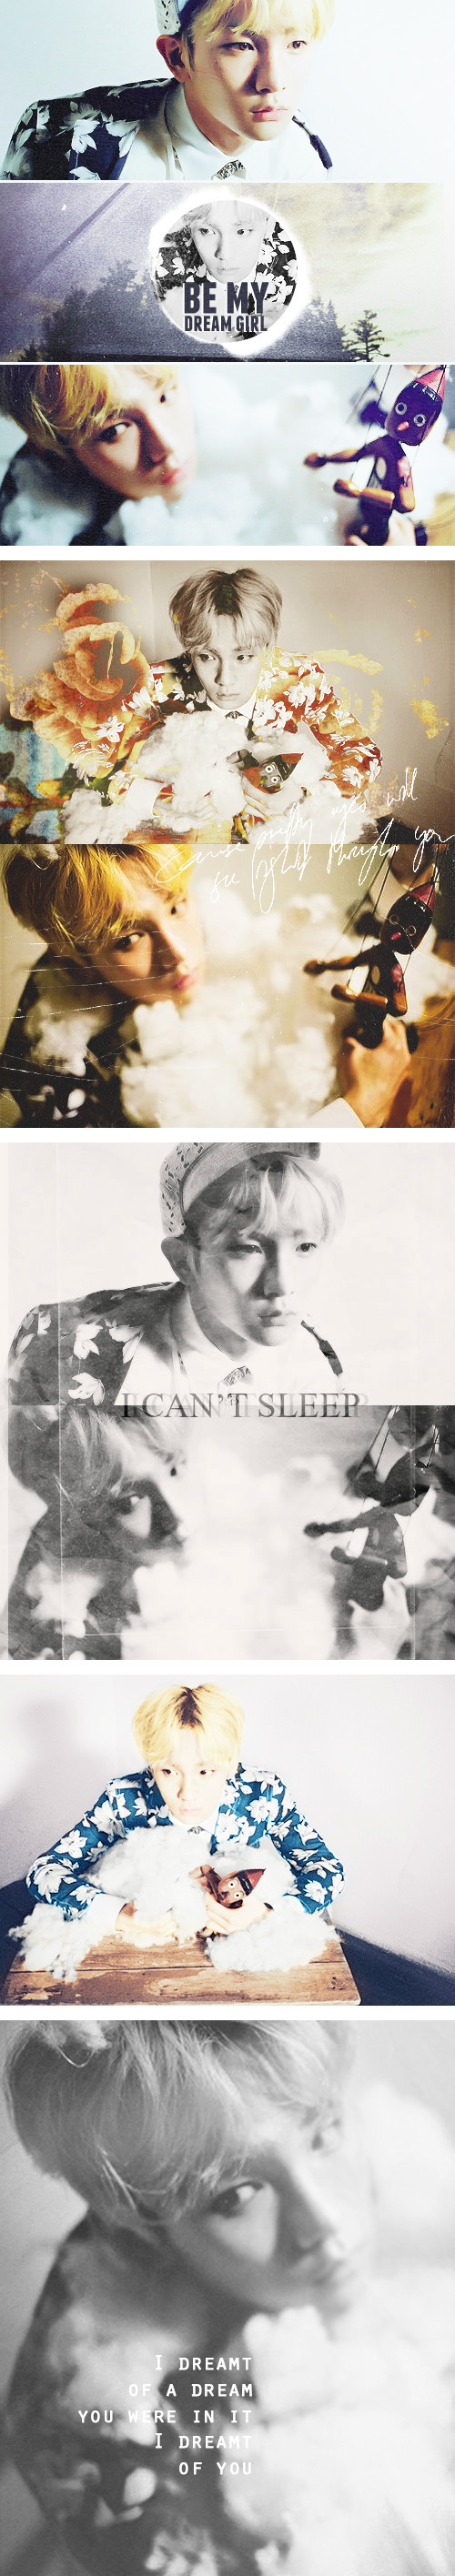 fanmade-130207 DREAM GIRL teaser key